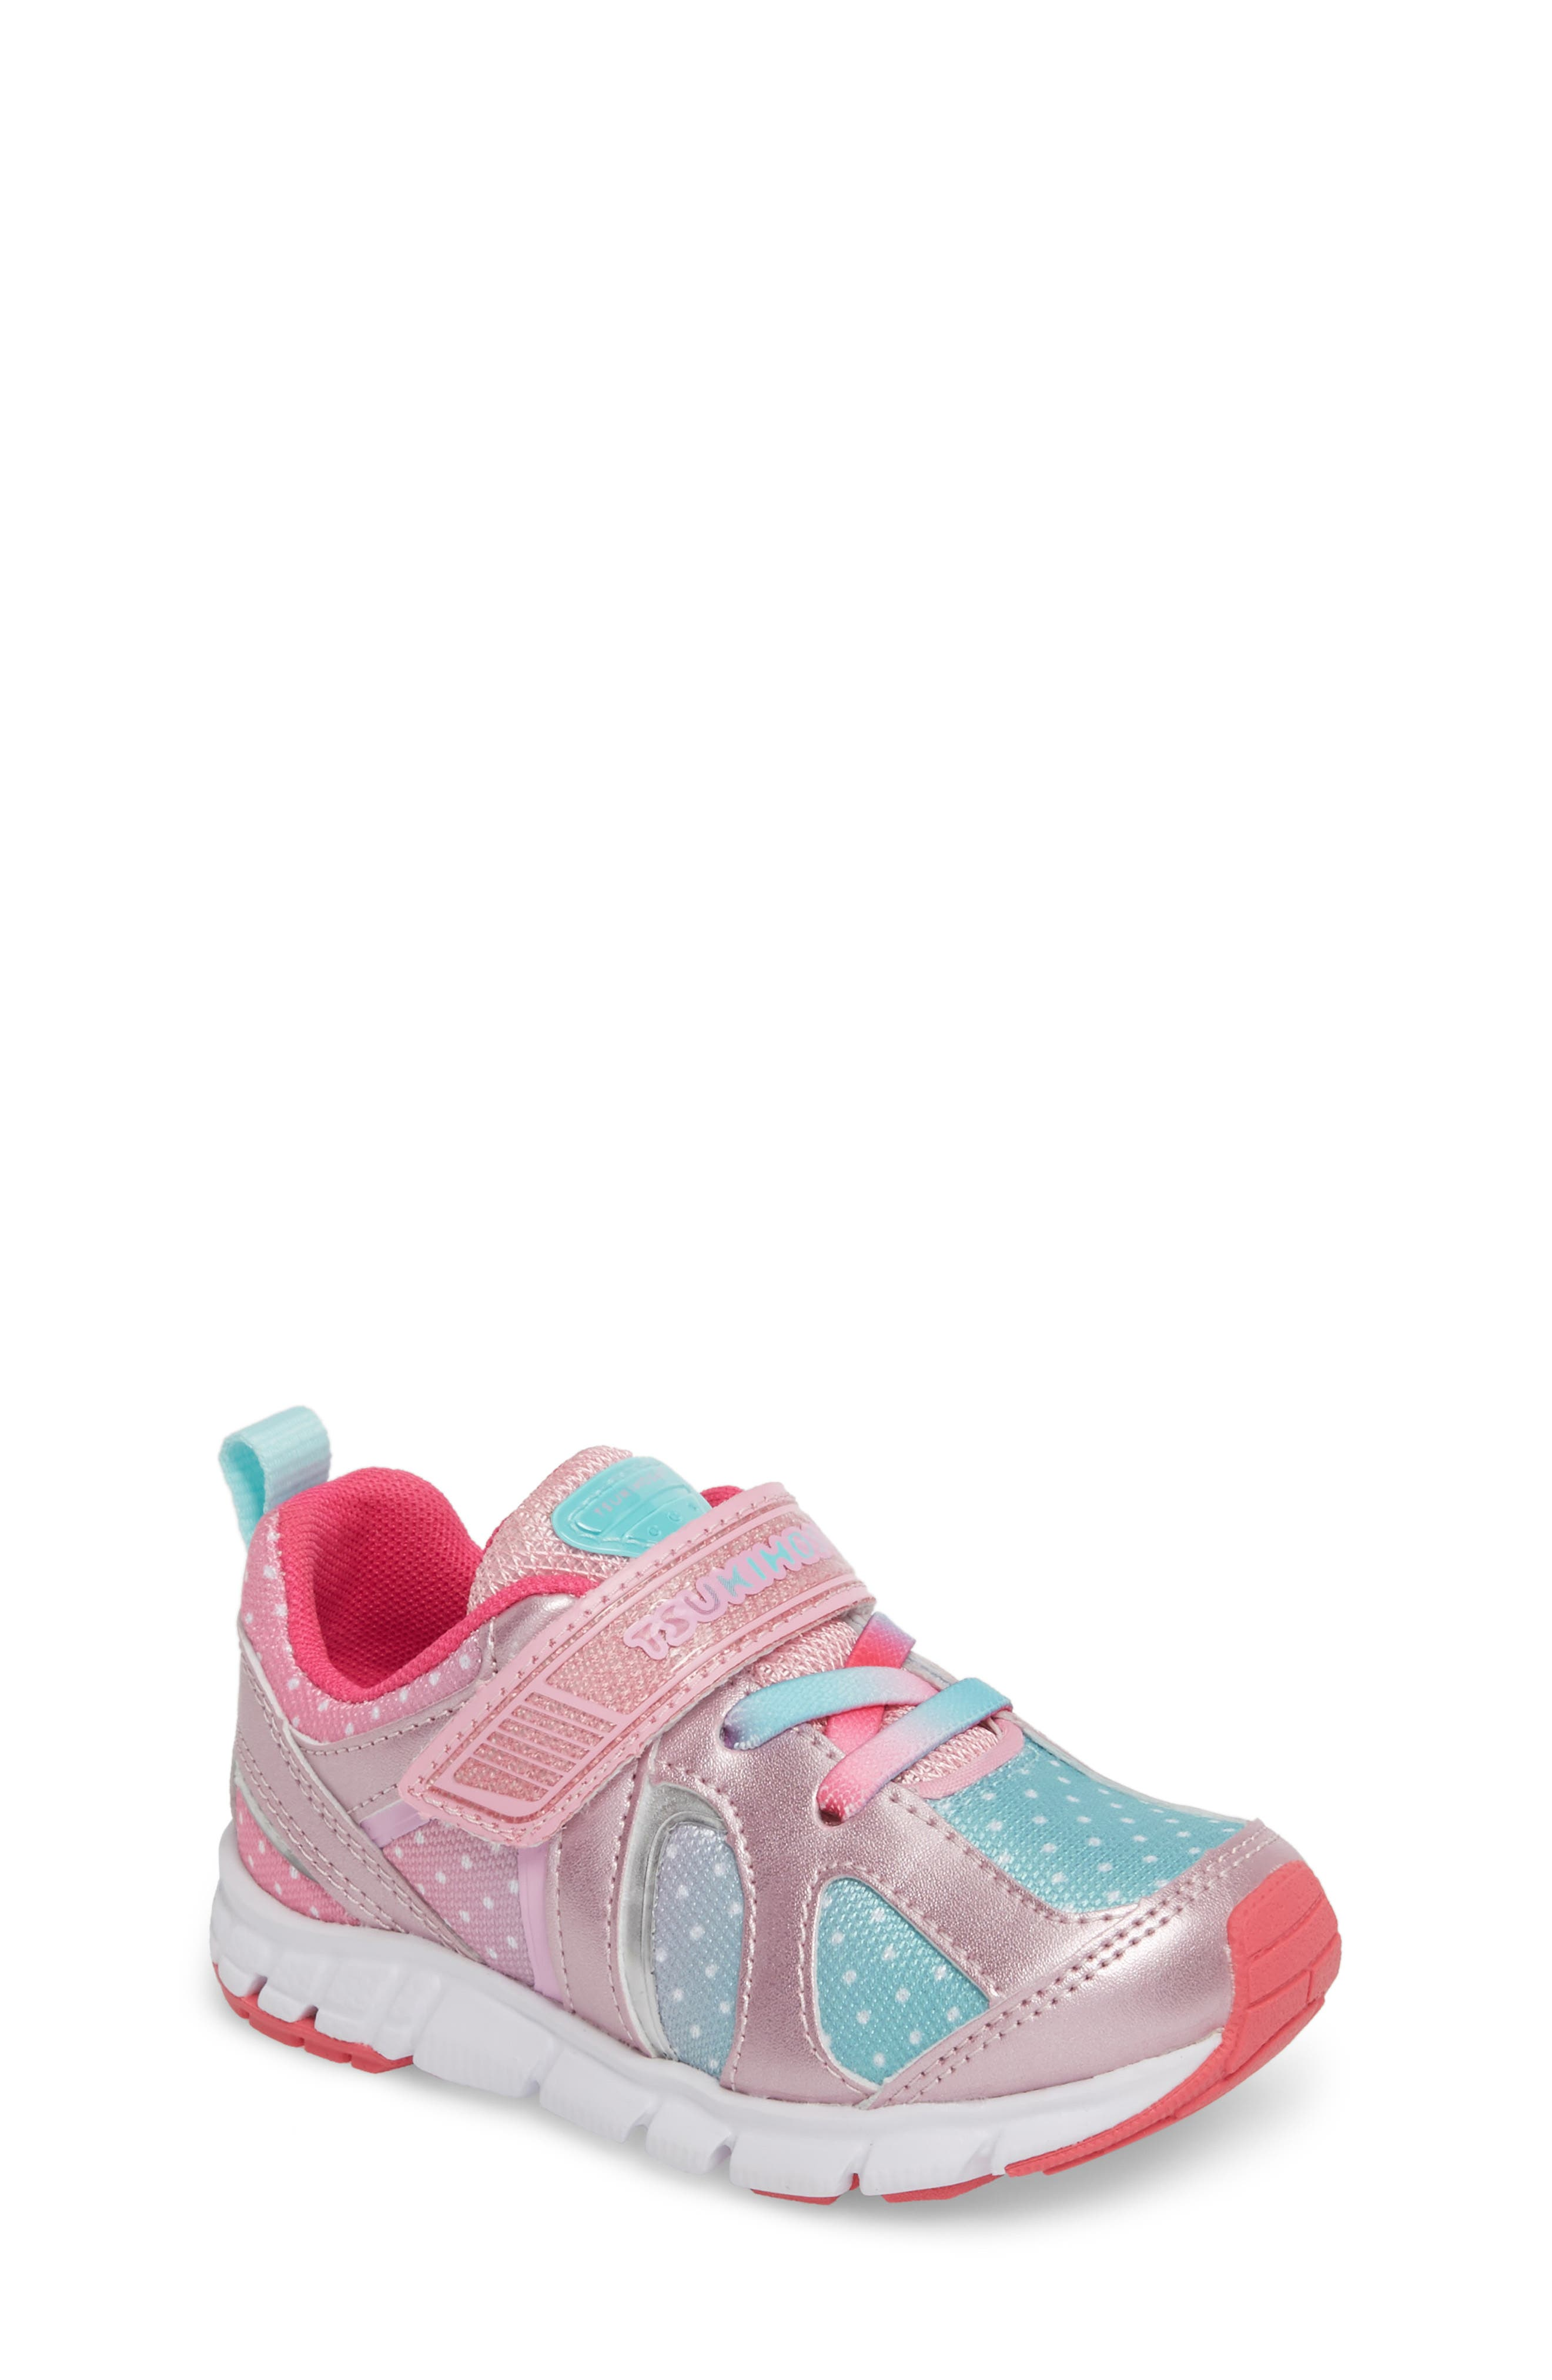 Tsukihoshi Rainbow Washable Sneaker (Walker, Toddler, Little Kid & Big Kid)